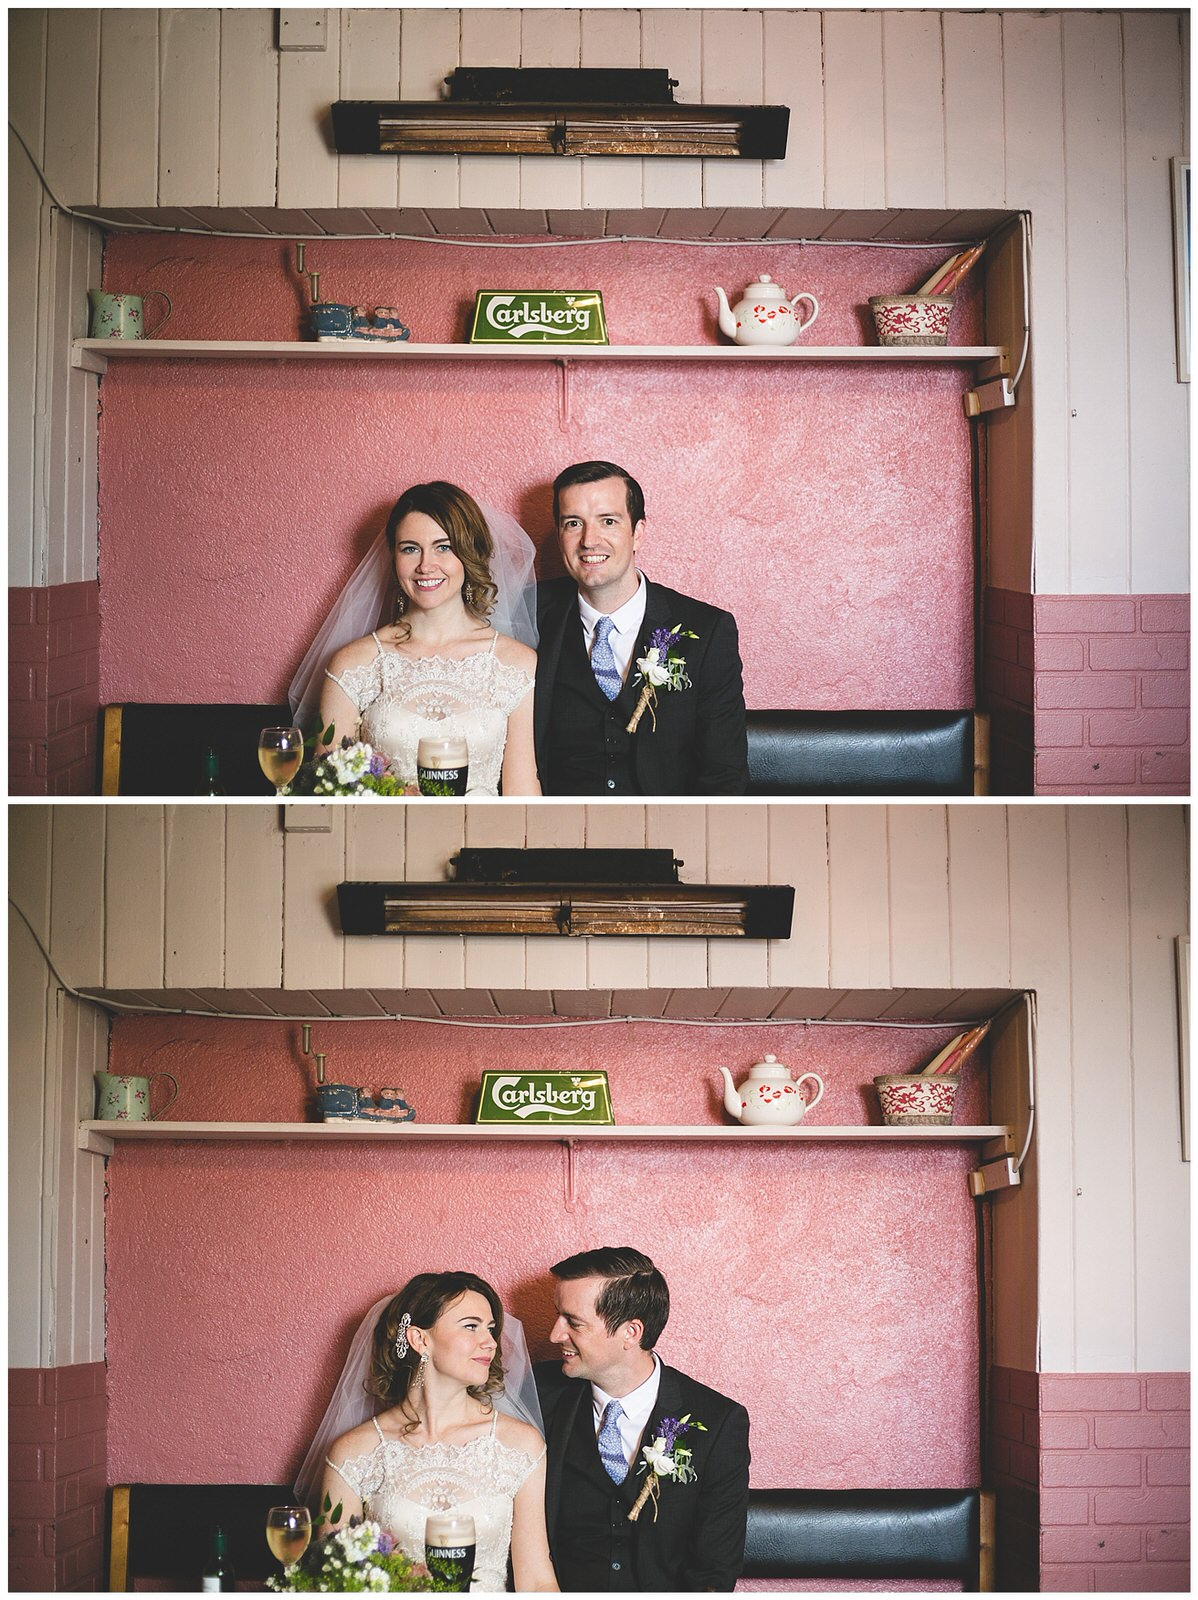 Wedding portraits in a cute Irish pub